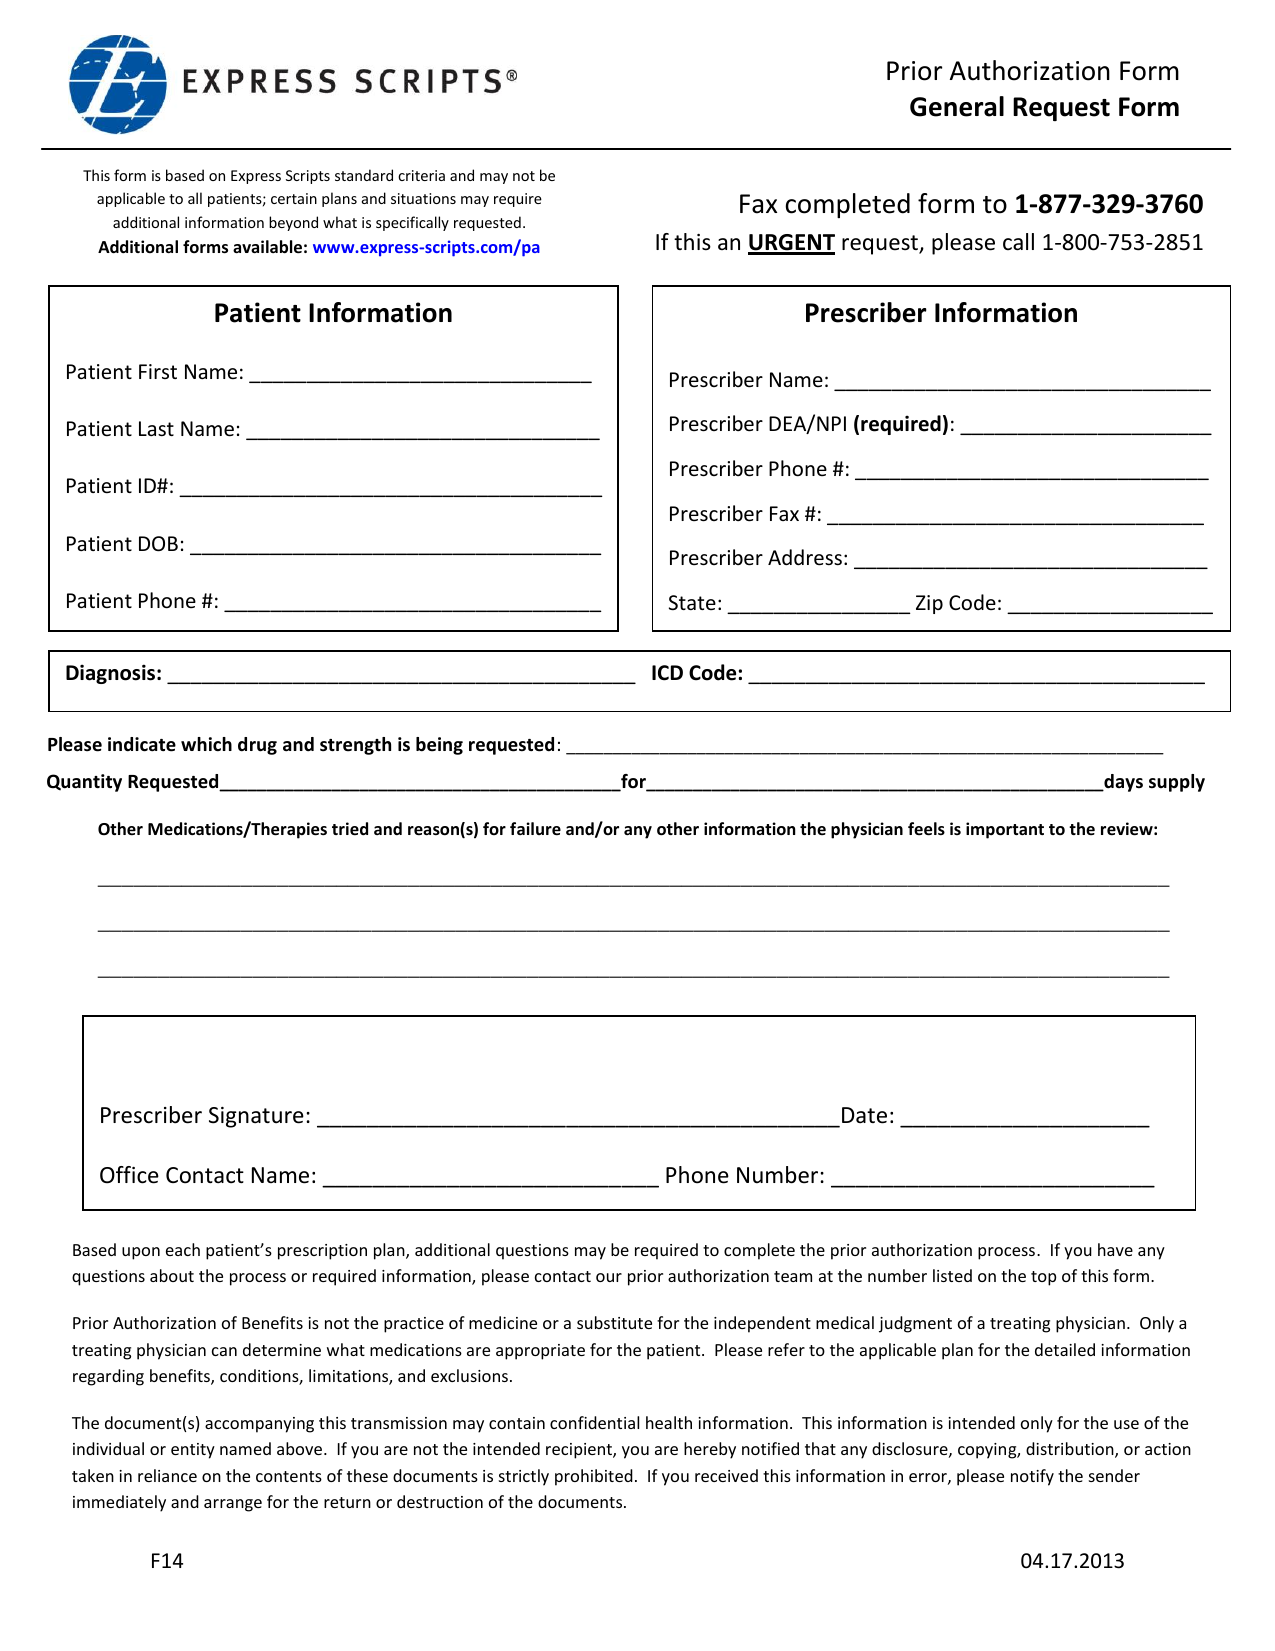 united healthcare prior authorization form download fax authorization form - Funf.pandroid.co